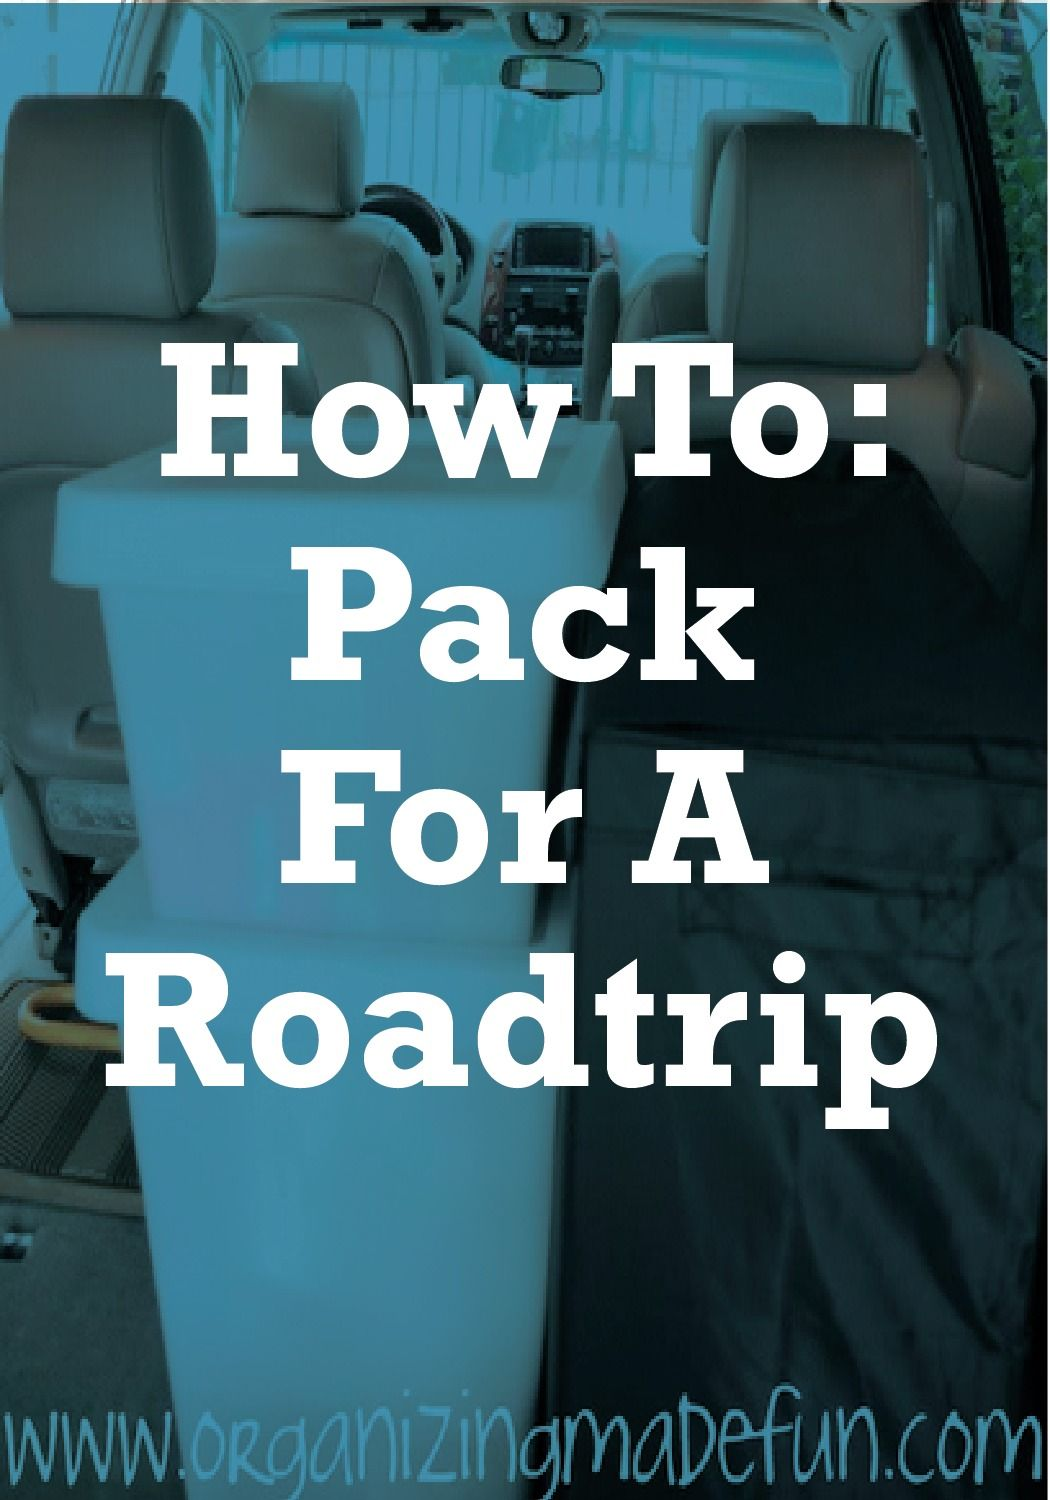 Discussion on this topic: How to Stay Organized on the Road, how-to-stay-organized-on-the-road/